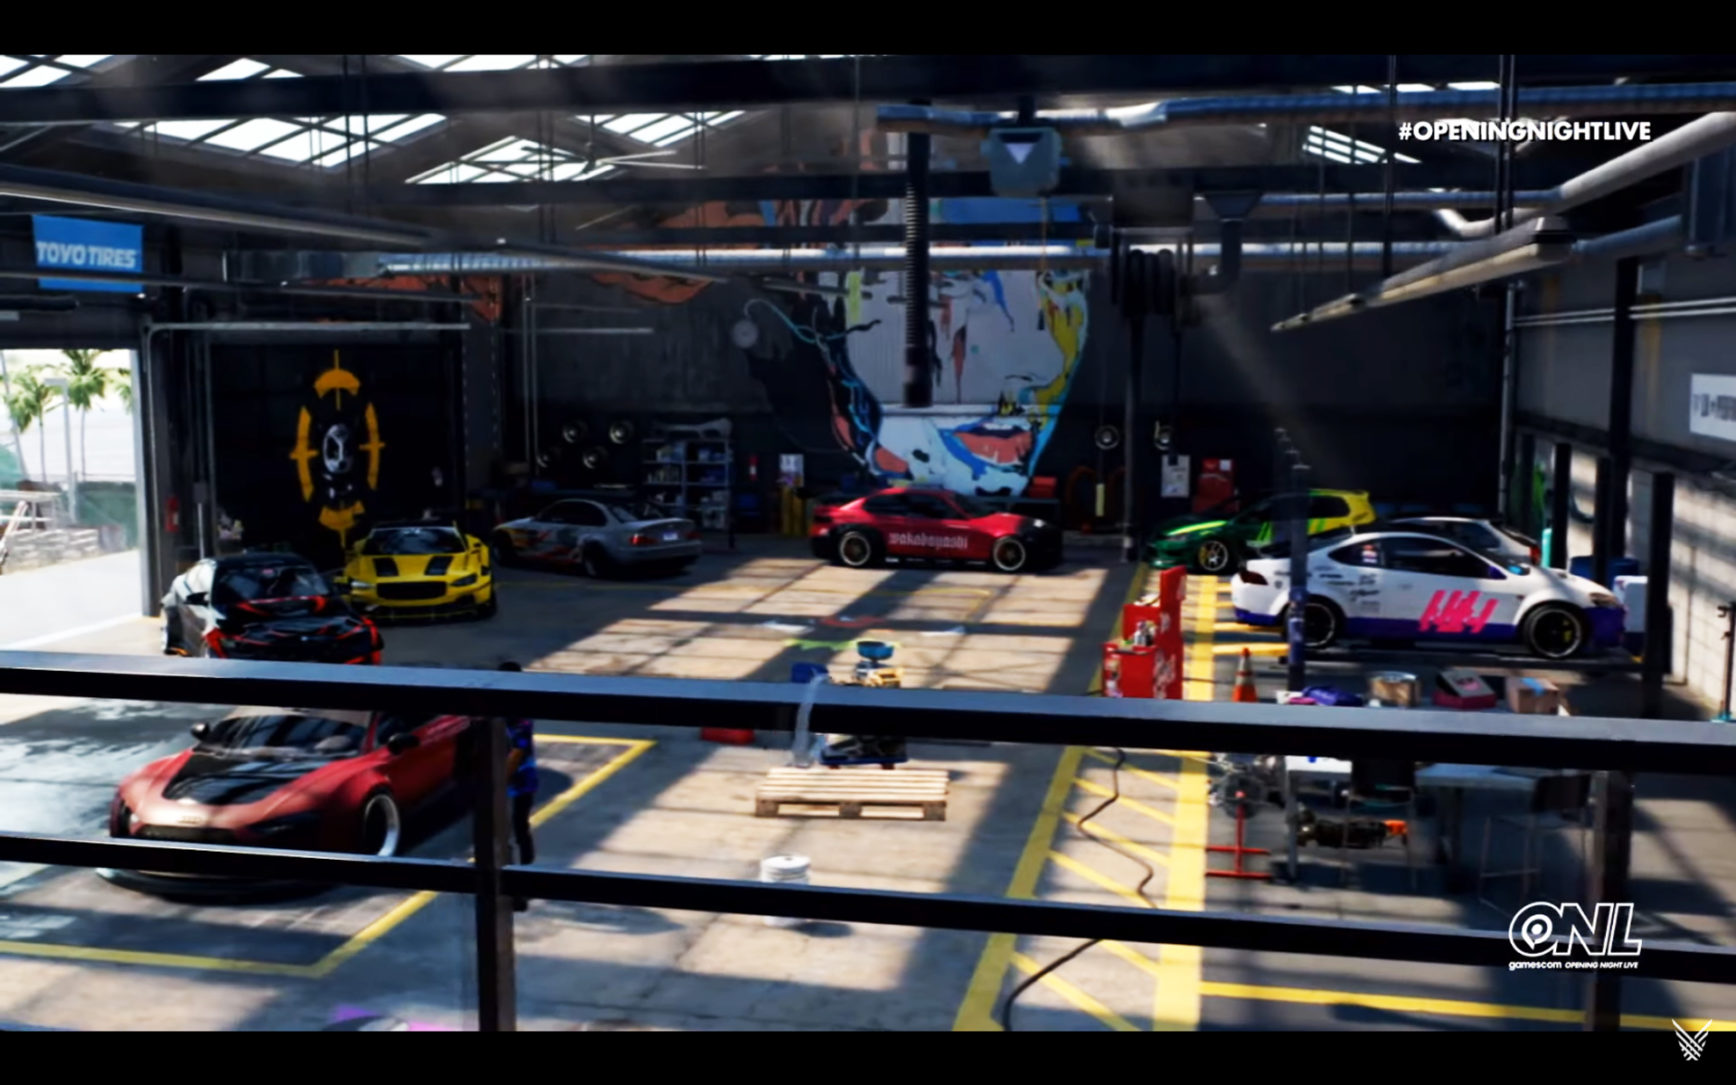 NFS Heat - 2019 - screen - gameplay trailer - Garage preview